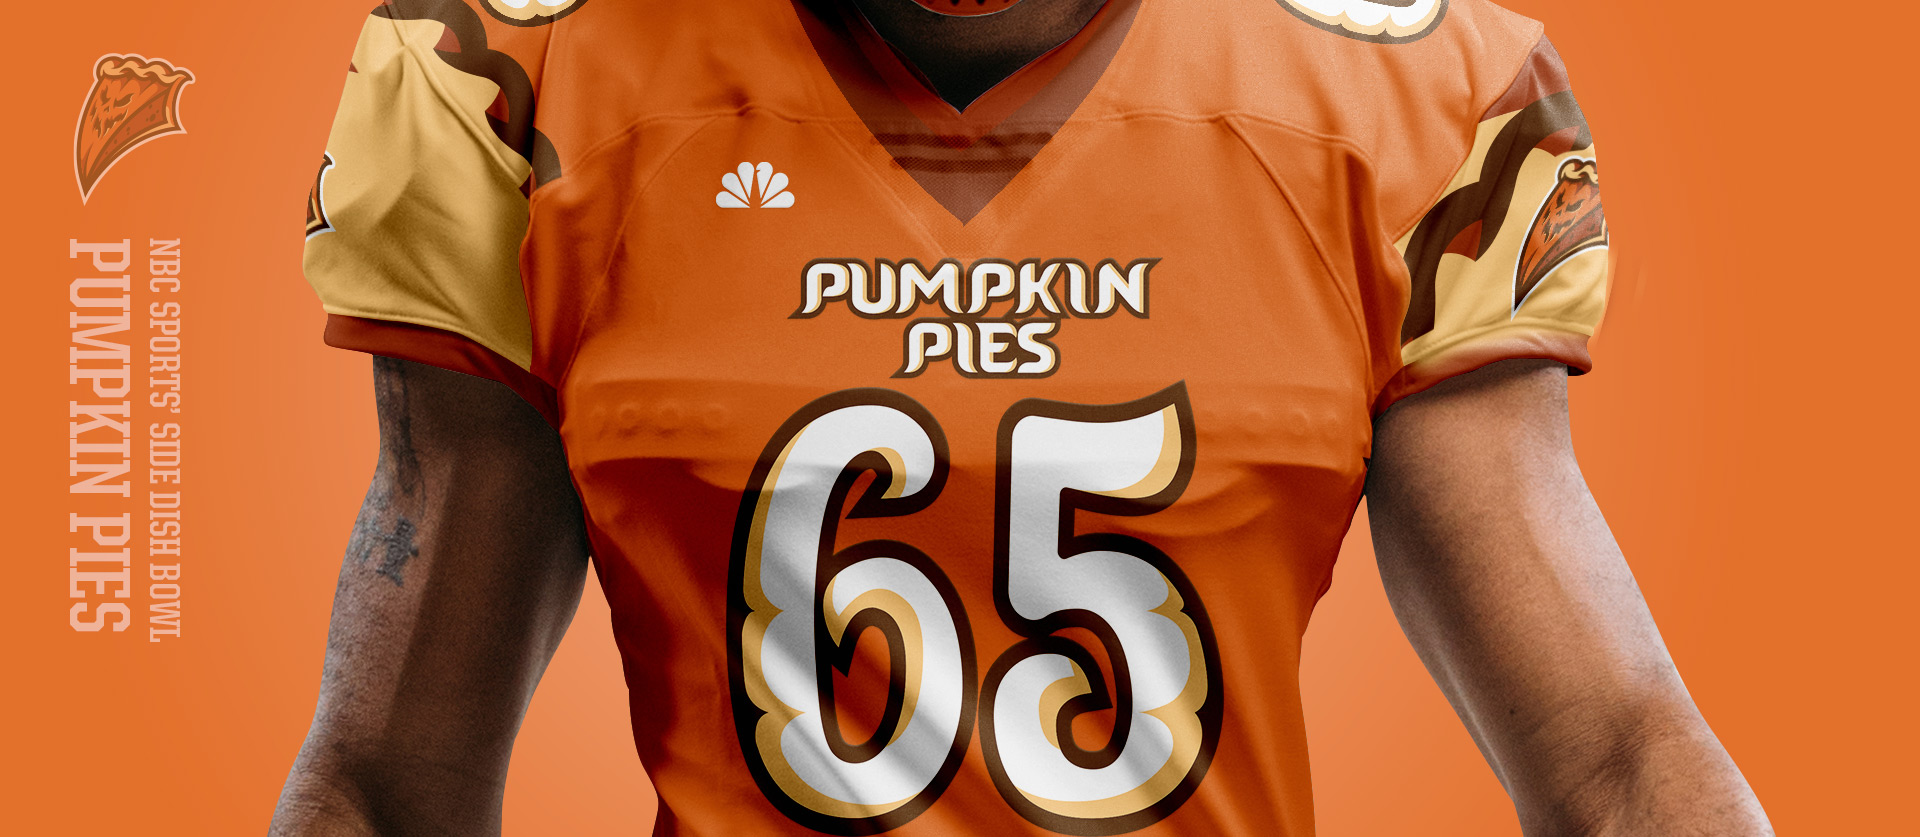 Pumpkin Pies Front - Football Uniform Design for NBC Sports Thanksgiving Side Dish Bowl